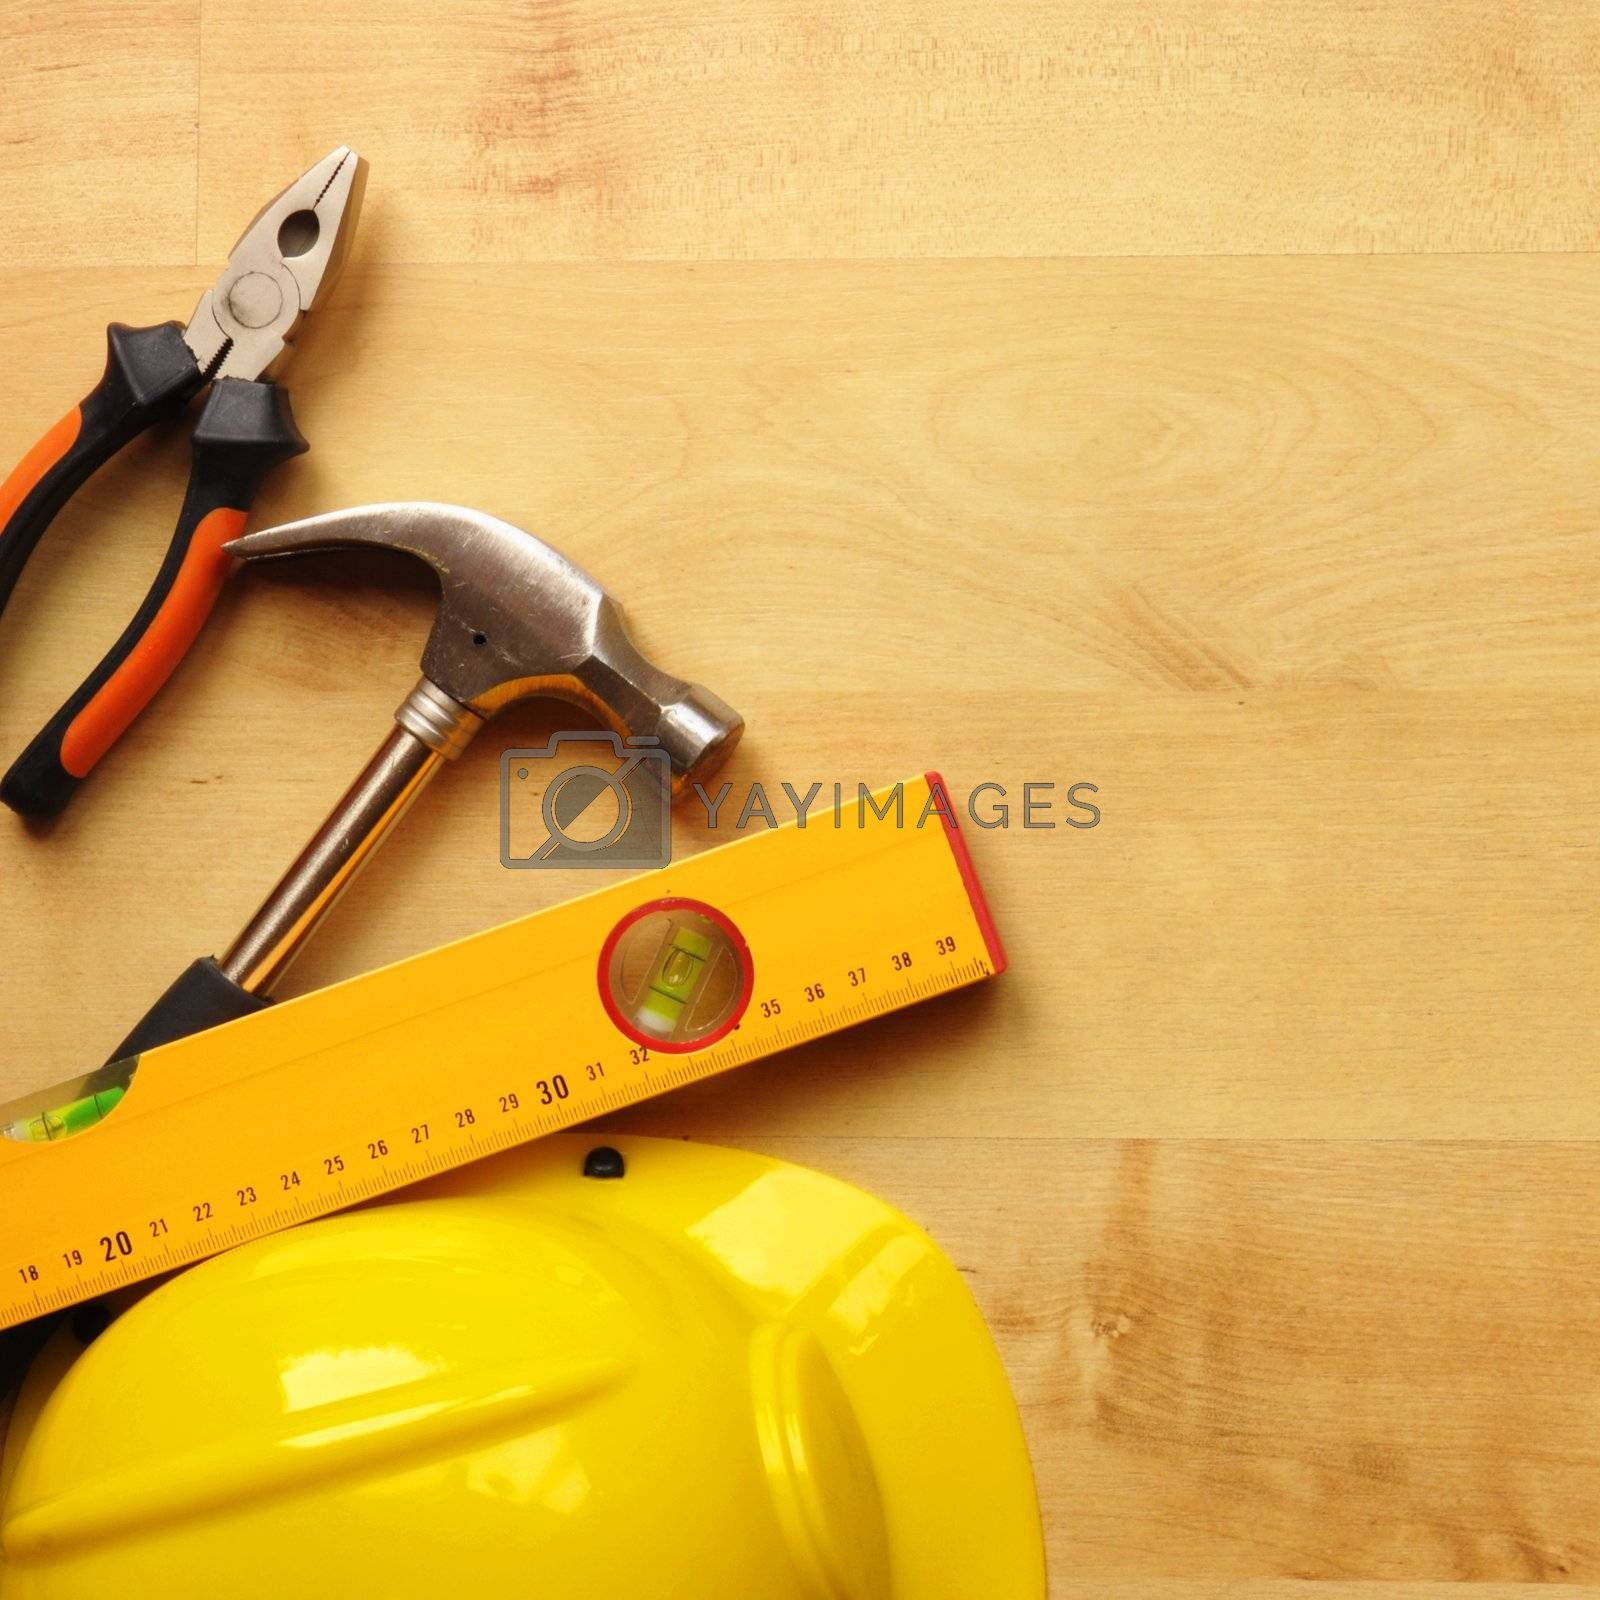 Royalty free image of hard hat and tool by gunnar3000